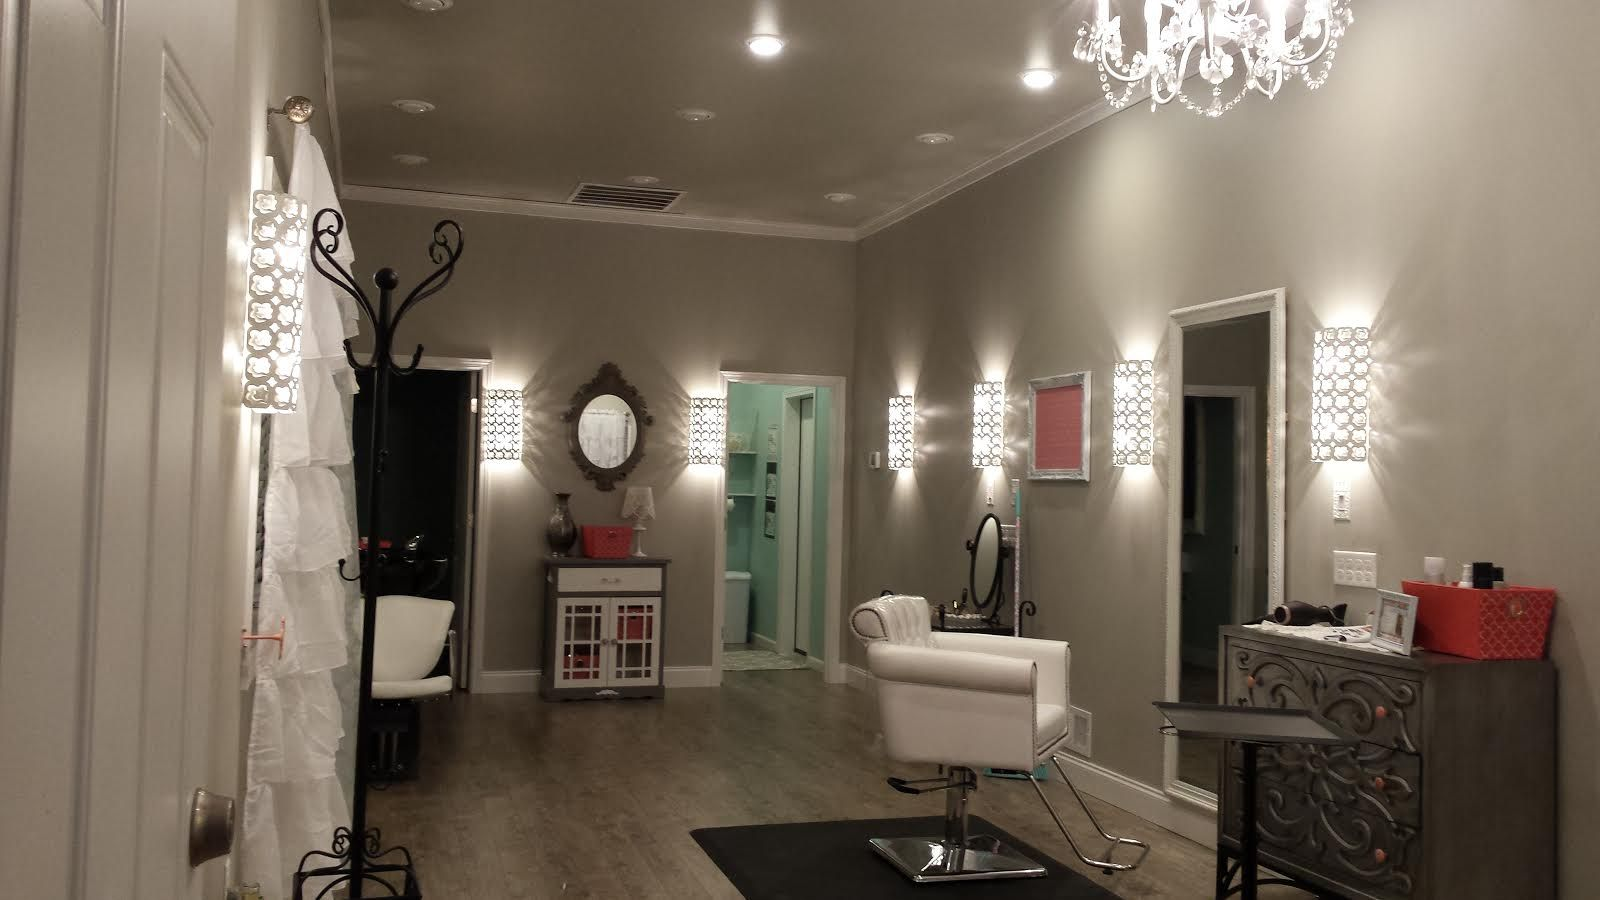 Beau Check Out Michelleu0027s Boutique Salon! After 10 Years Of Working As A  Stylist, Decided To Open Her Very Own Home Salon.